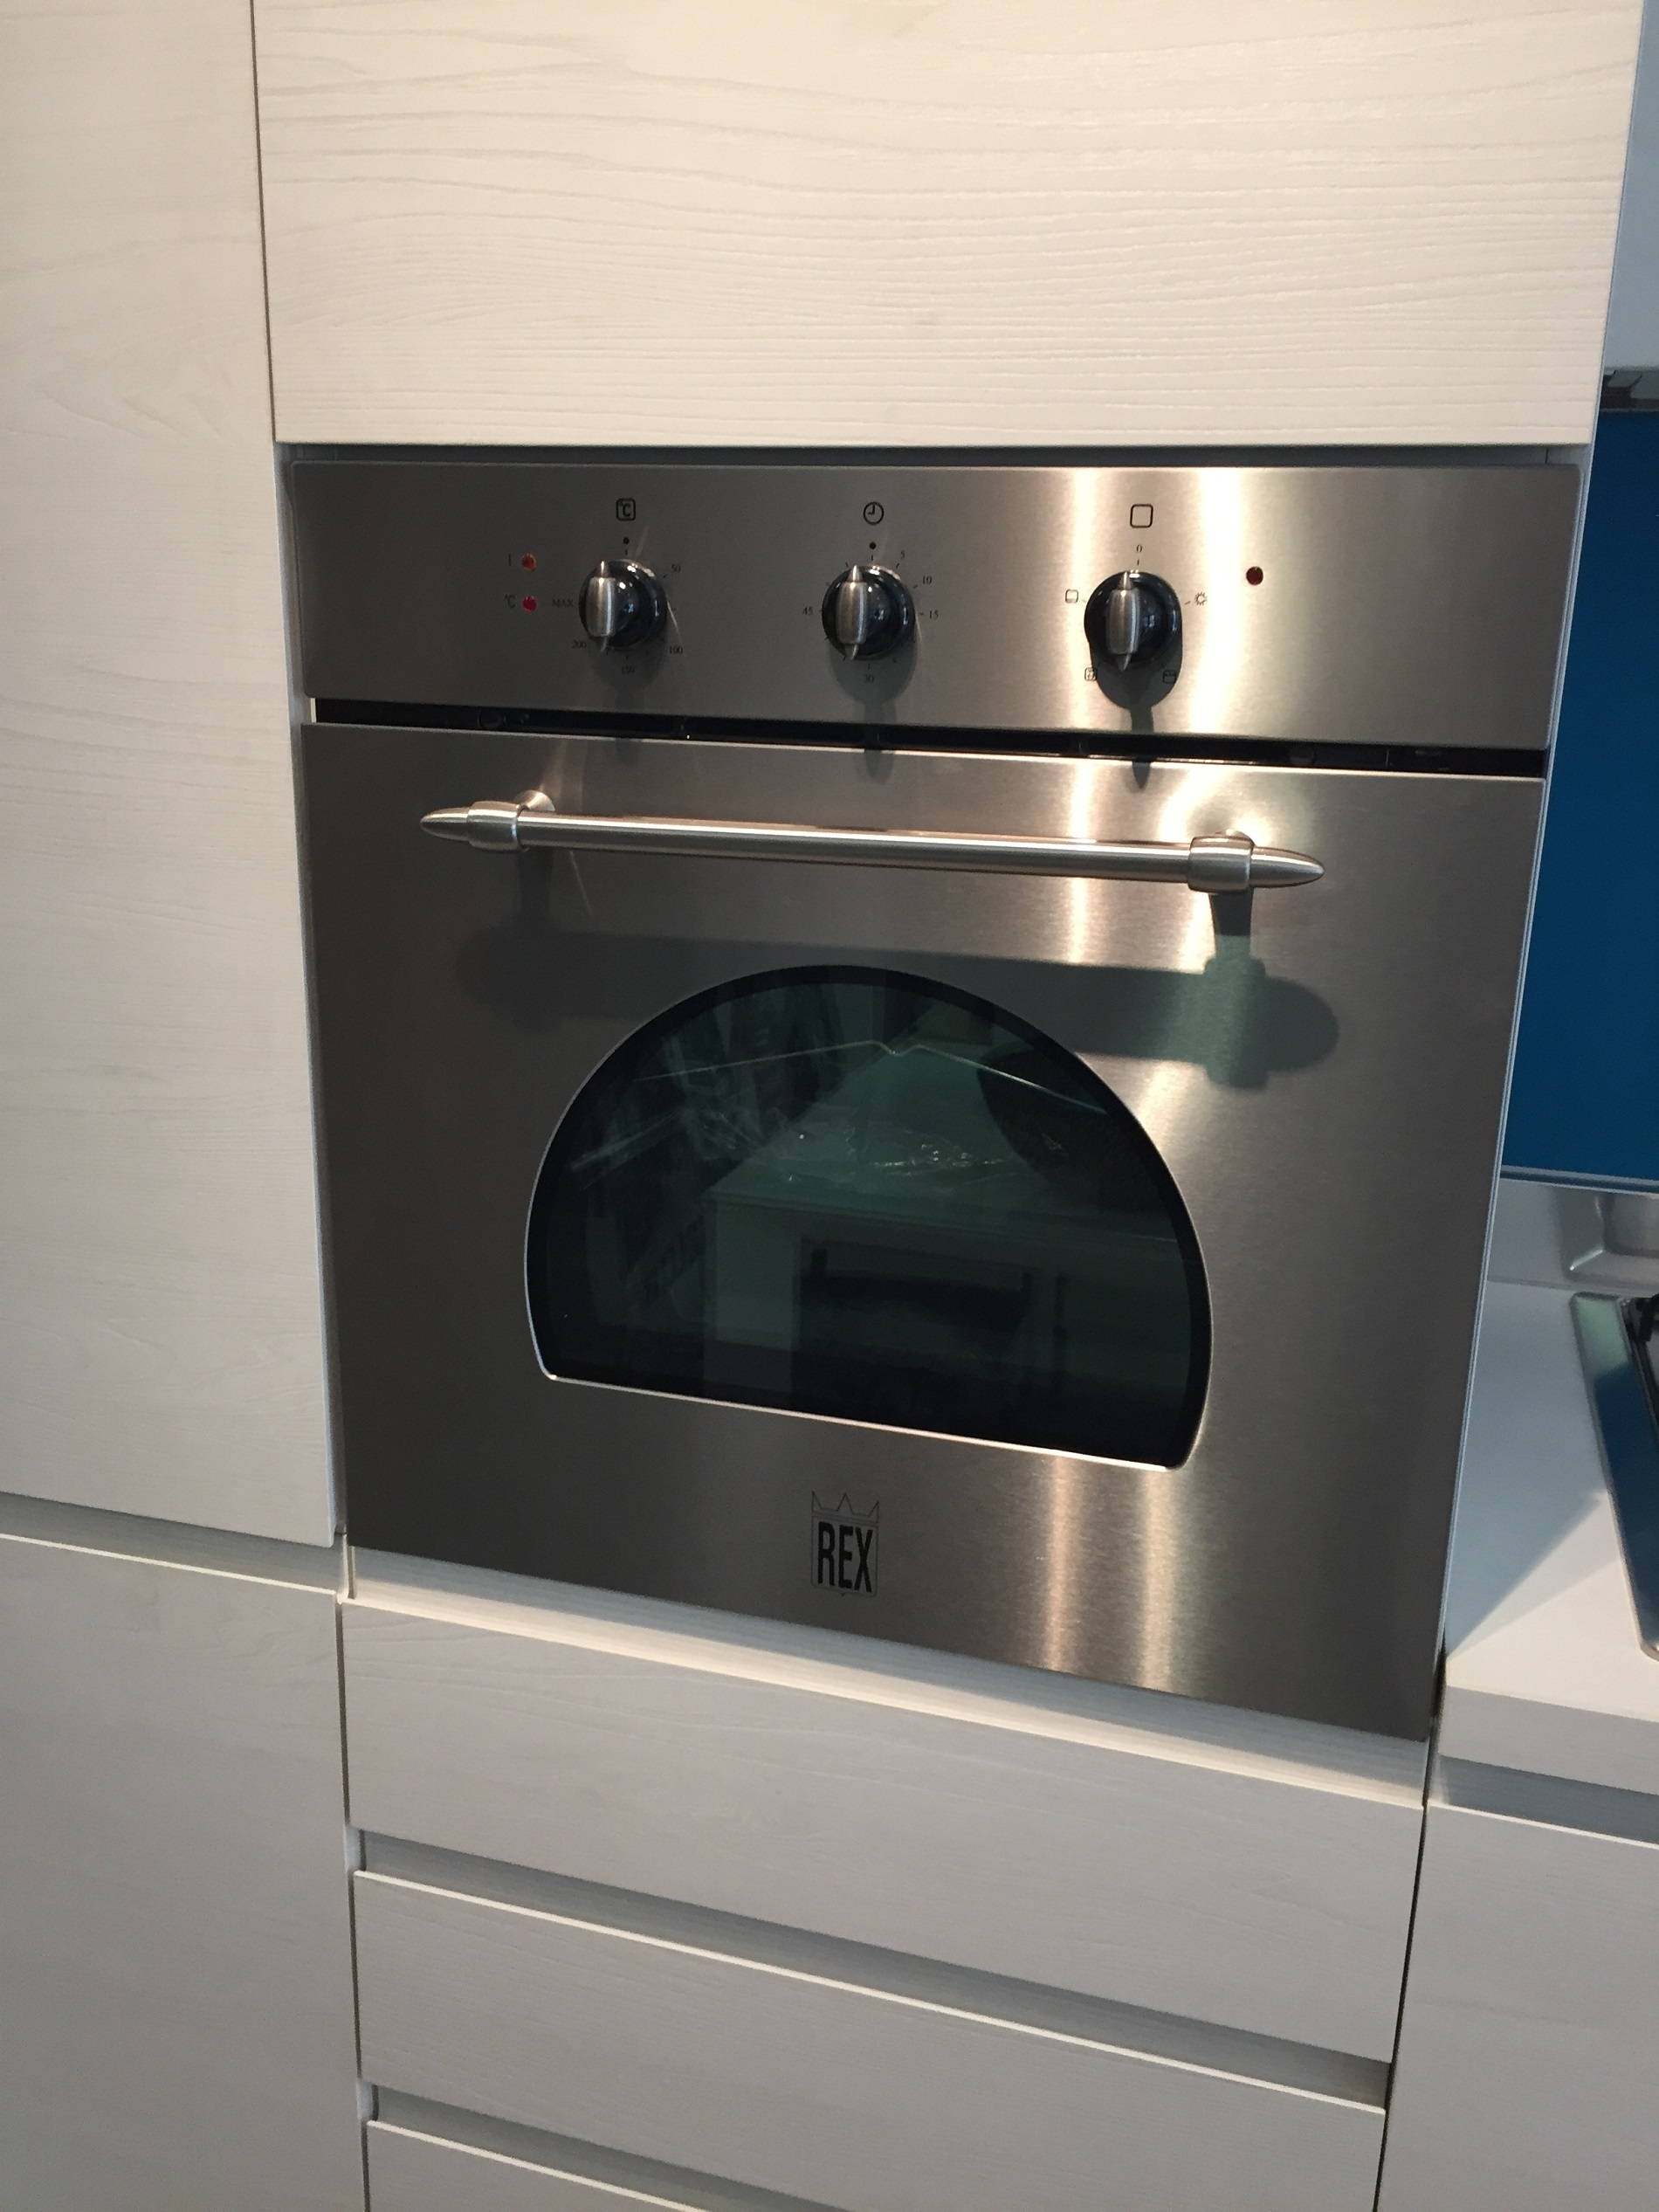 Emejing Forno Rex Electrolux Pictures - acrylicgiftware.us ...